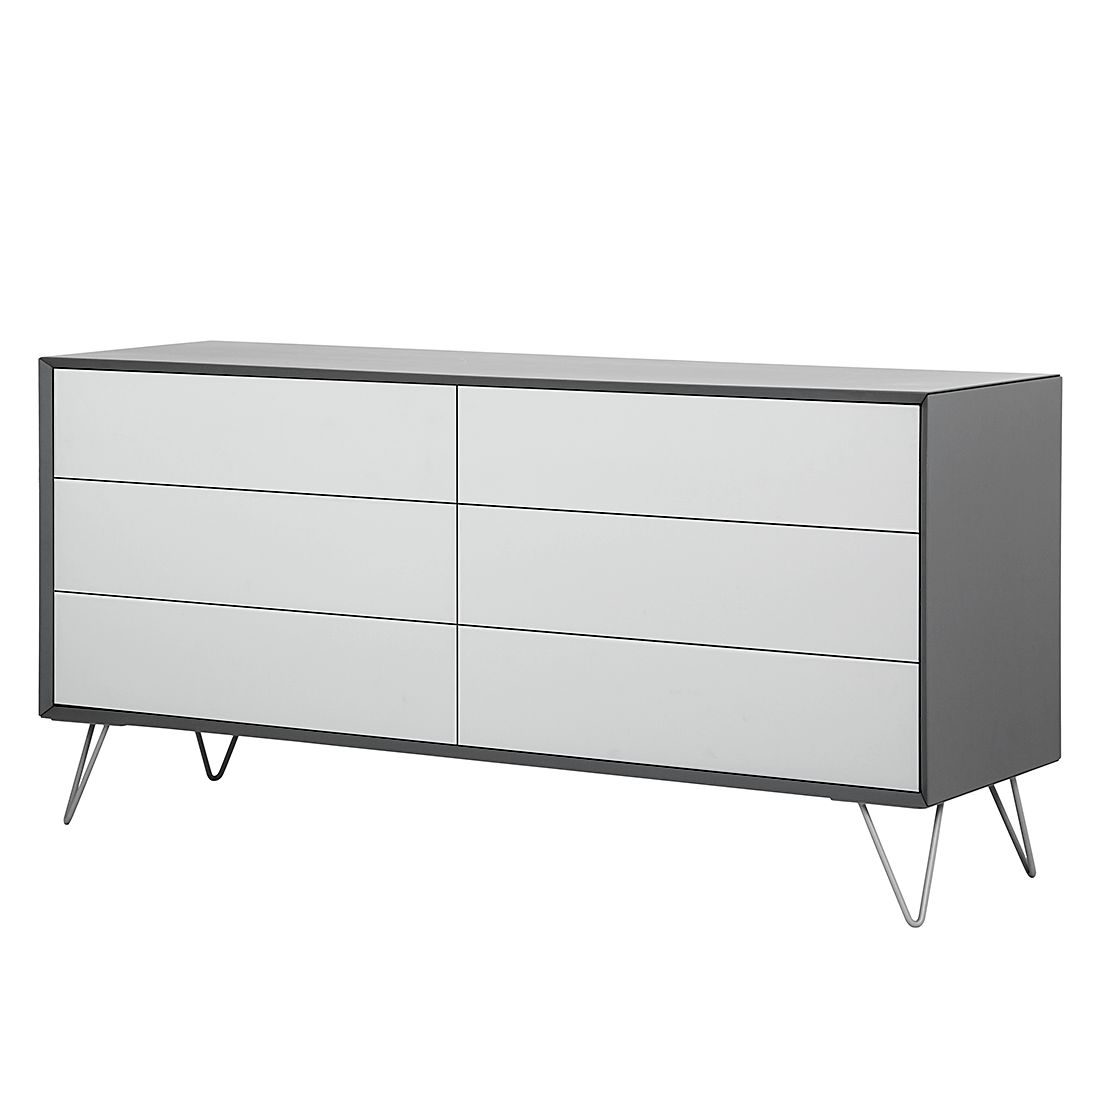 sideboard jerrell ii matt grau m rteens kleinm bel. Black Bedroom Furniture Sets. Home Design Ideas